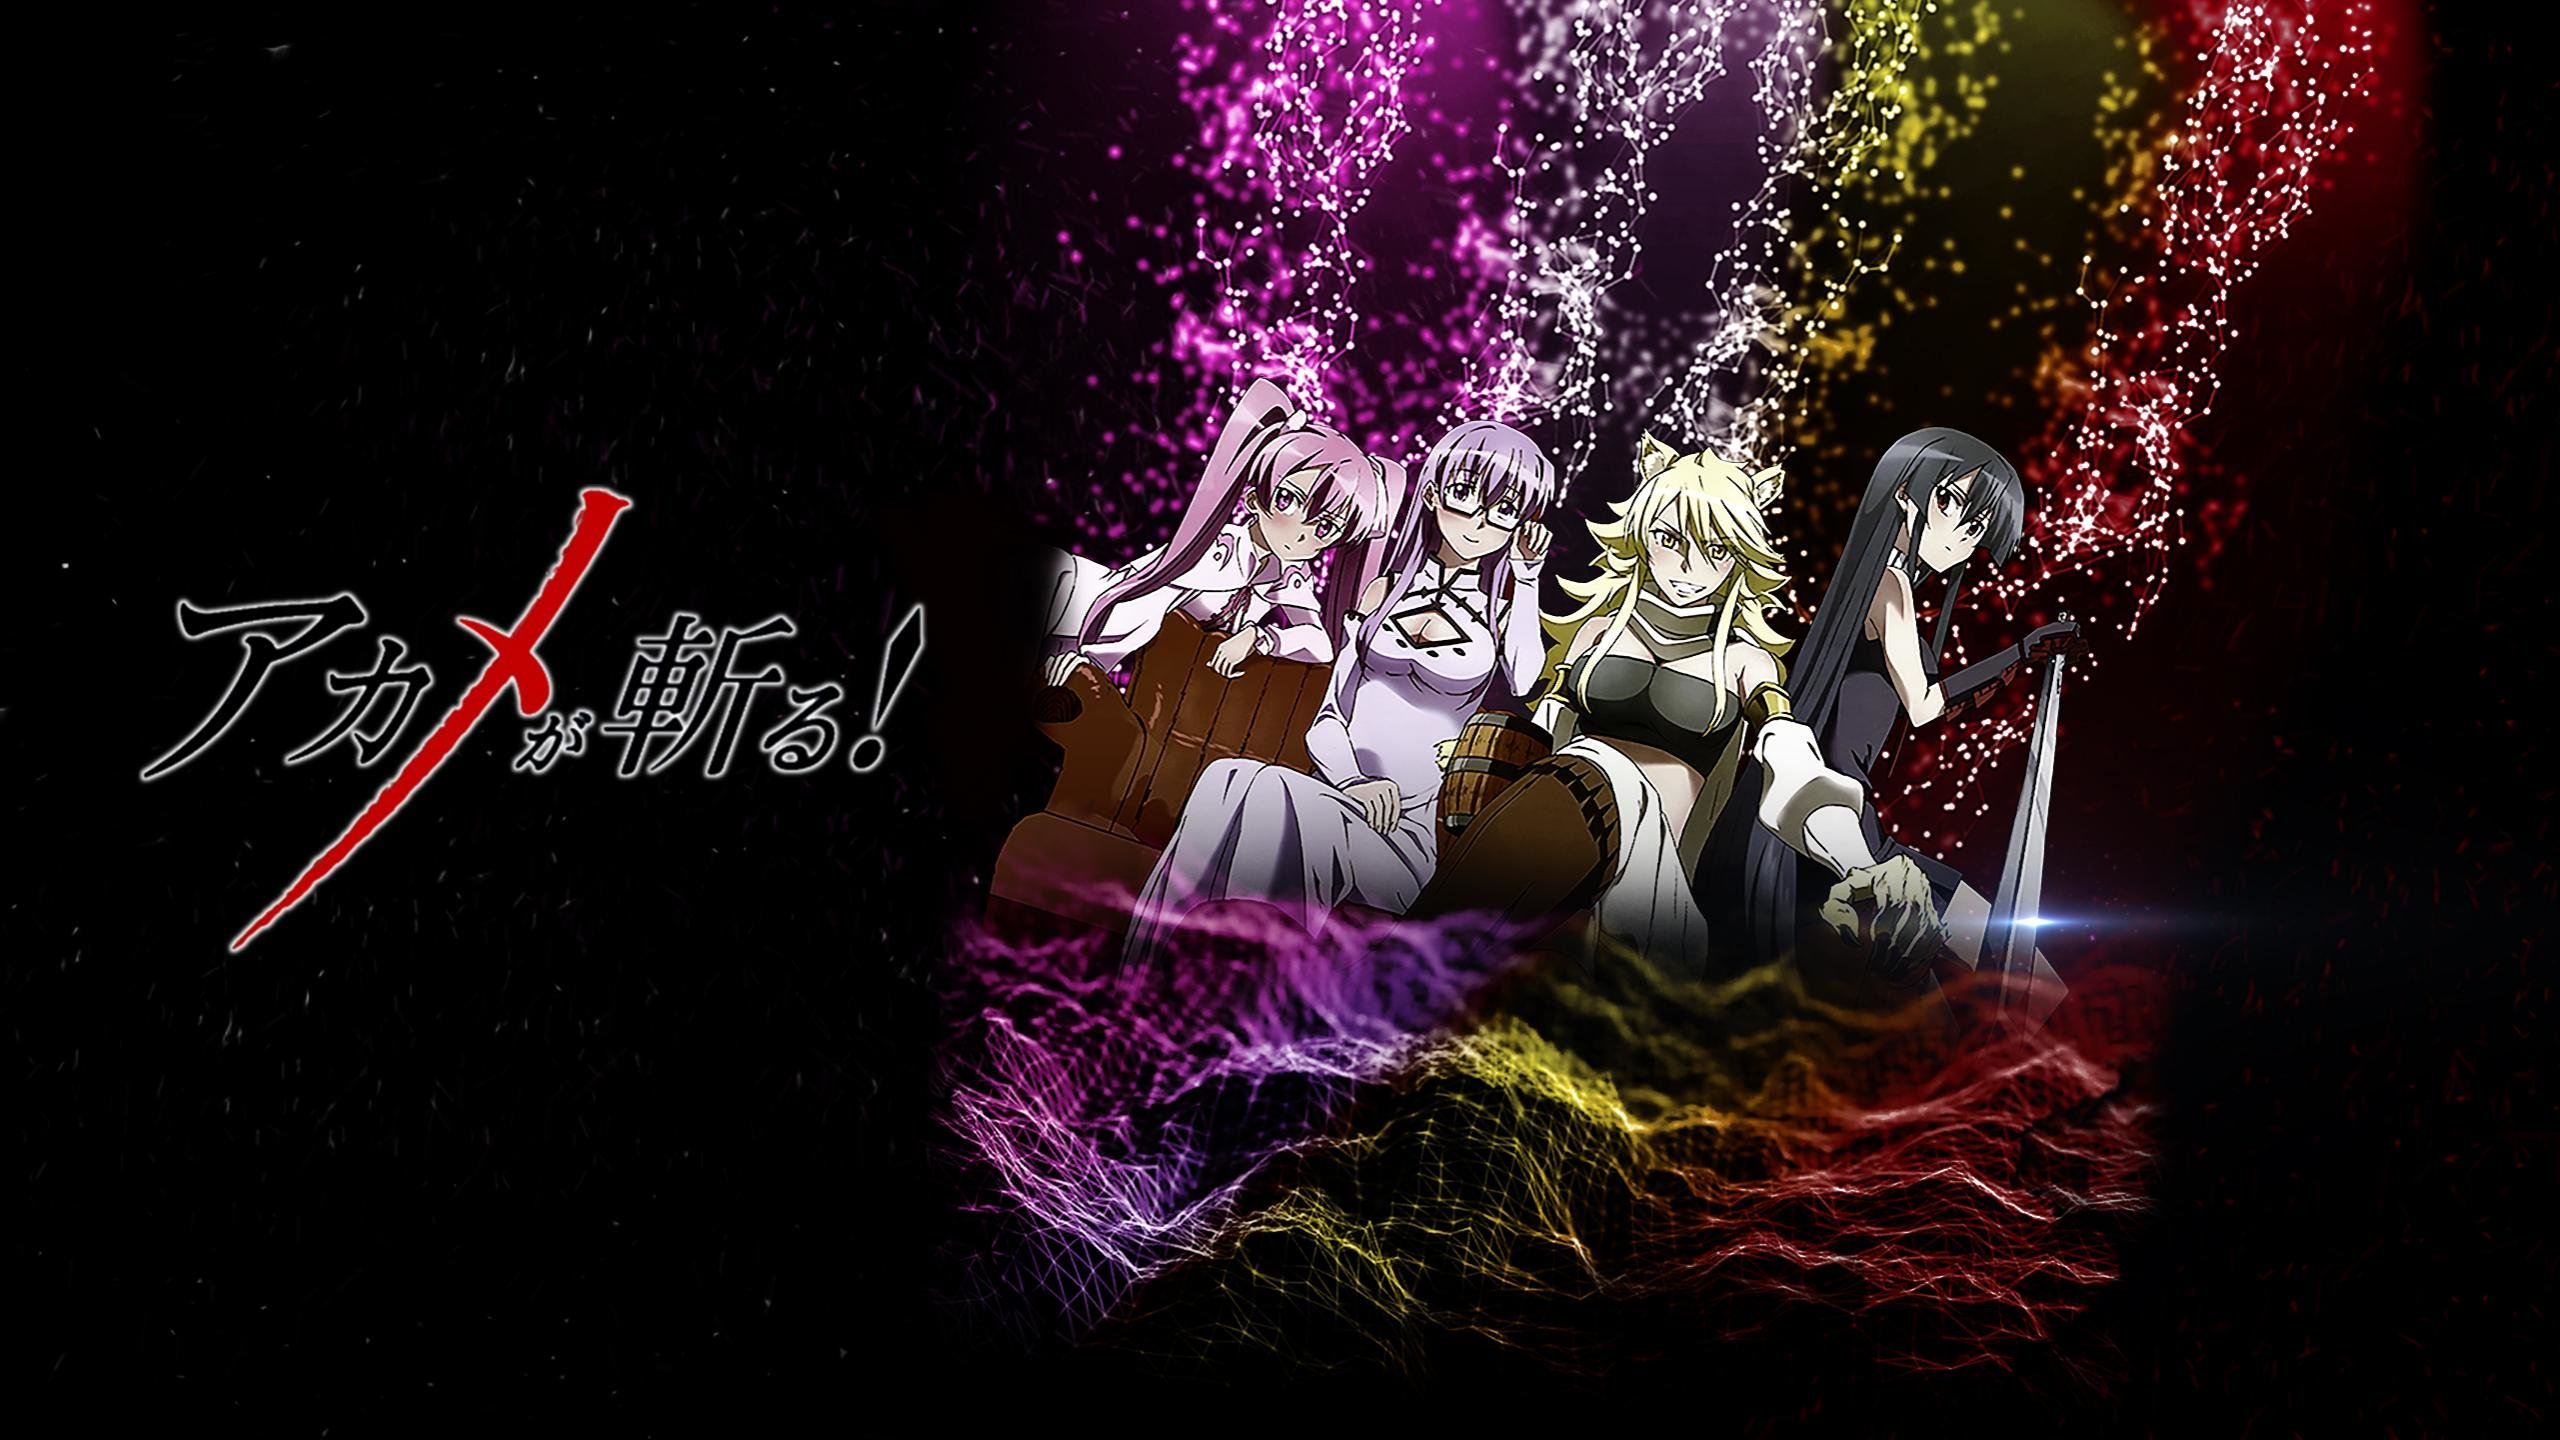 Awesome Akame Ga Kill! free wallpaper ID:208004 for hd 2560x1440 PC